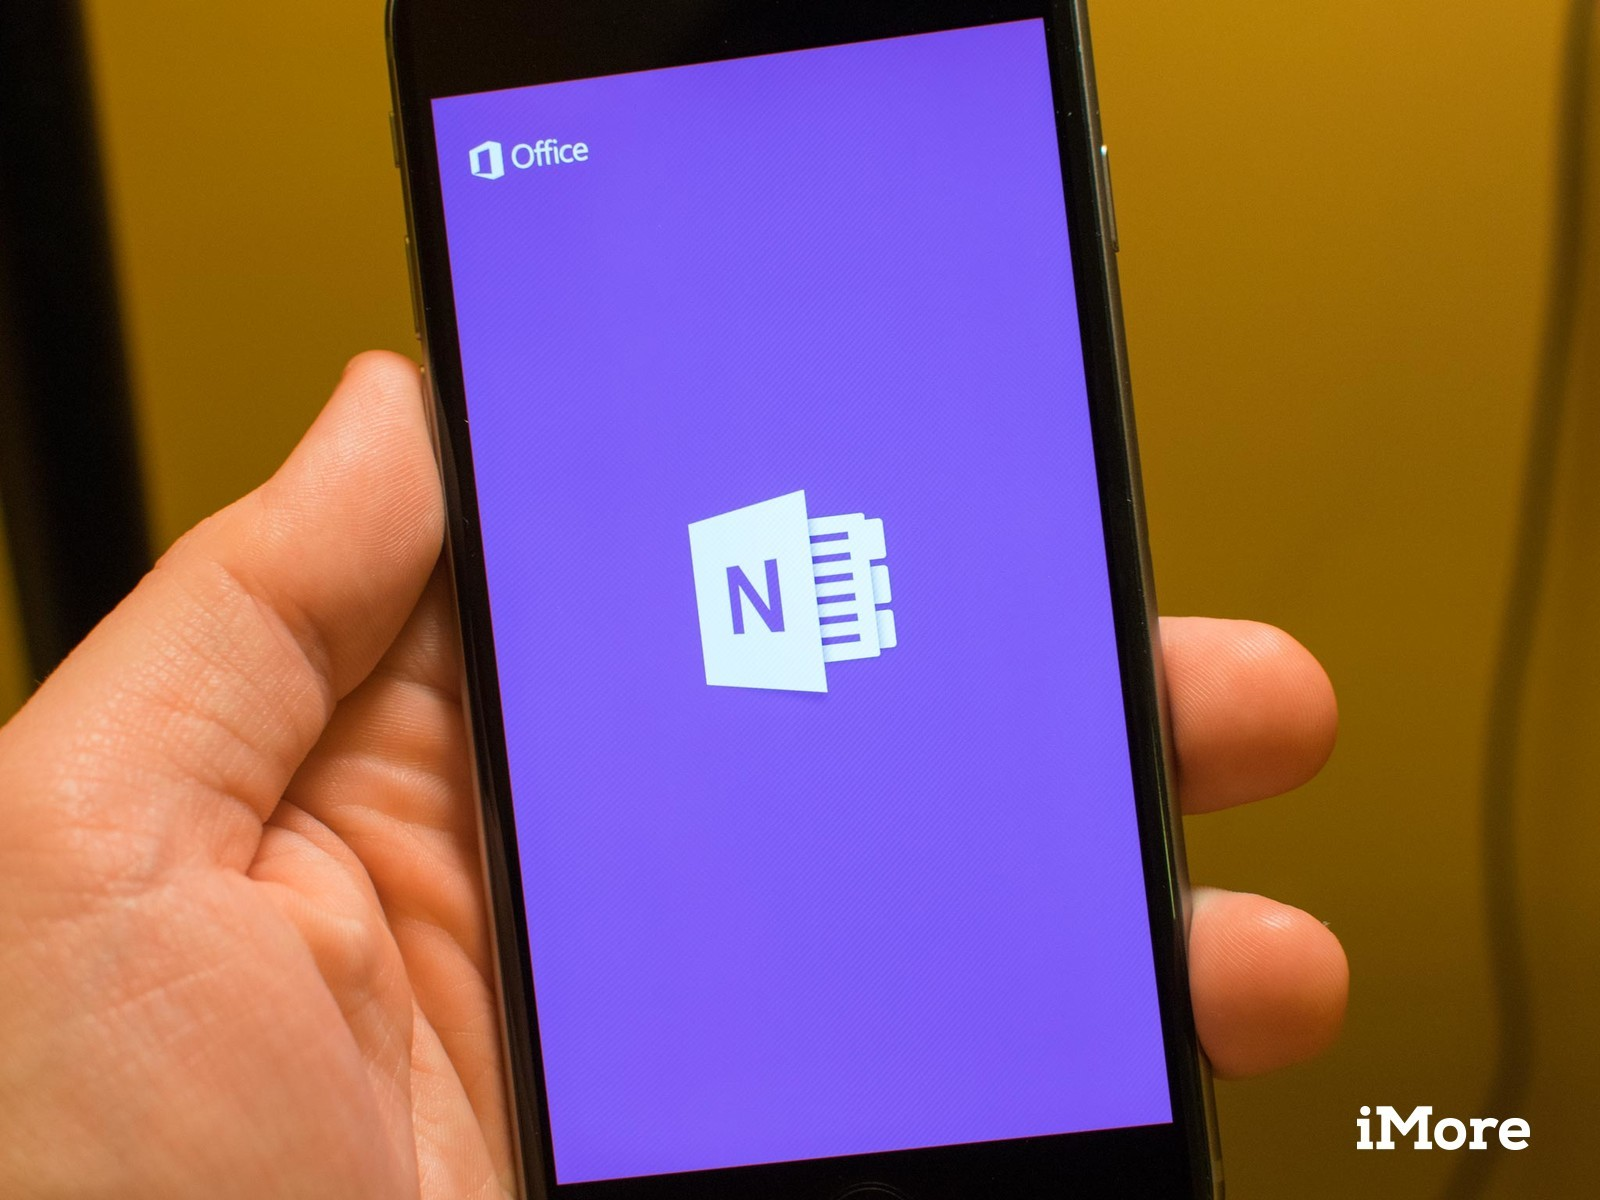 OneNote for iPhone gets support for Touch ID, iPhone 6 and 6 Plus